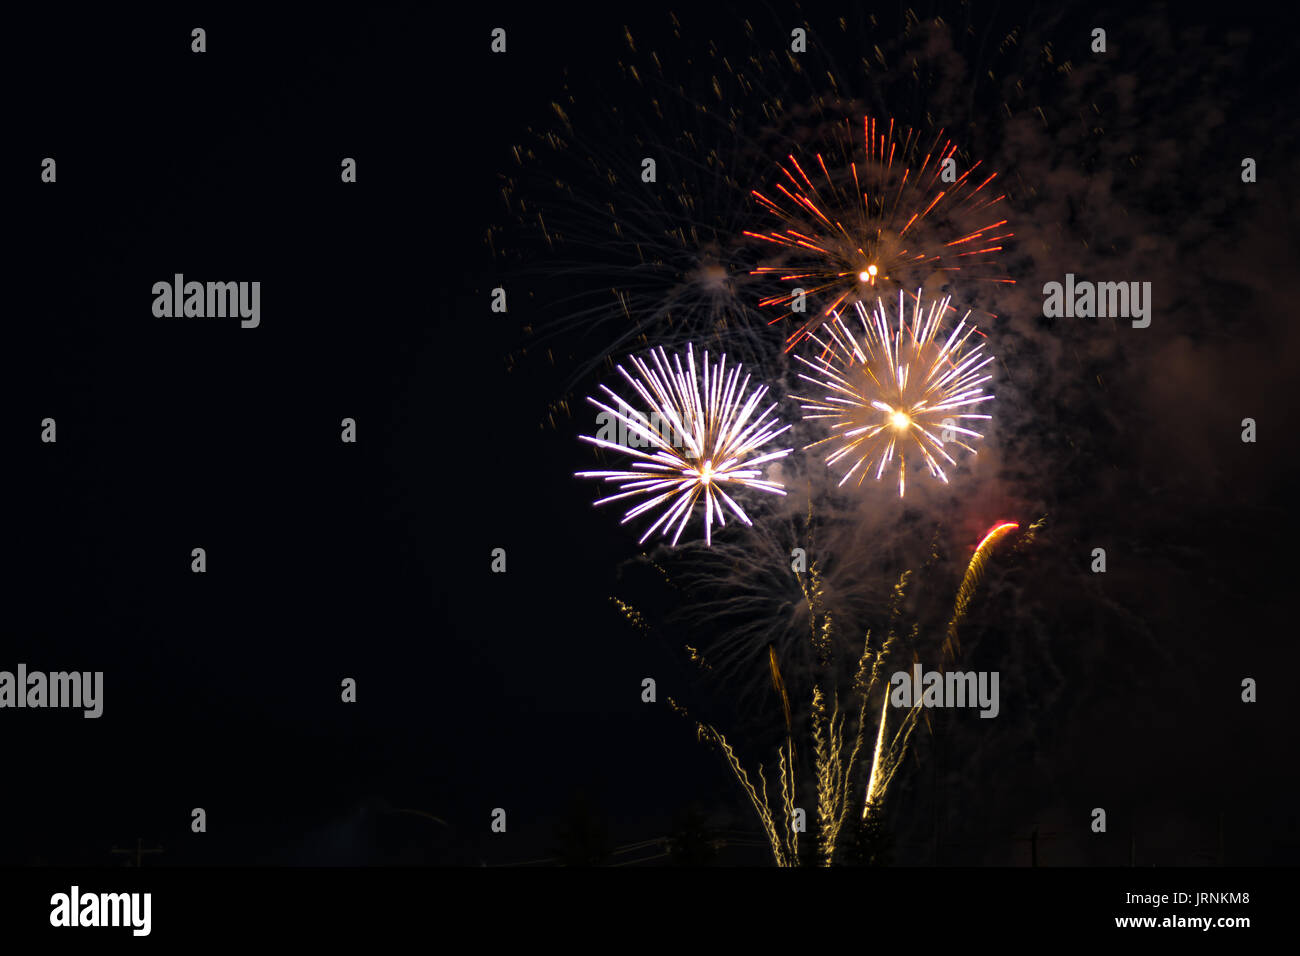 Brilliant fireworks display of red, yellow and white colors, set against a black sky during an evening of celebrating a national holiday. - Stock Image